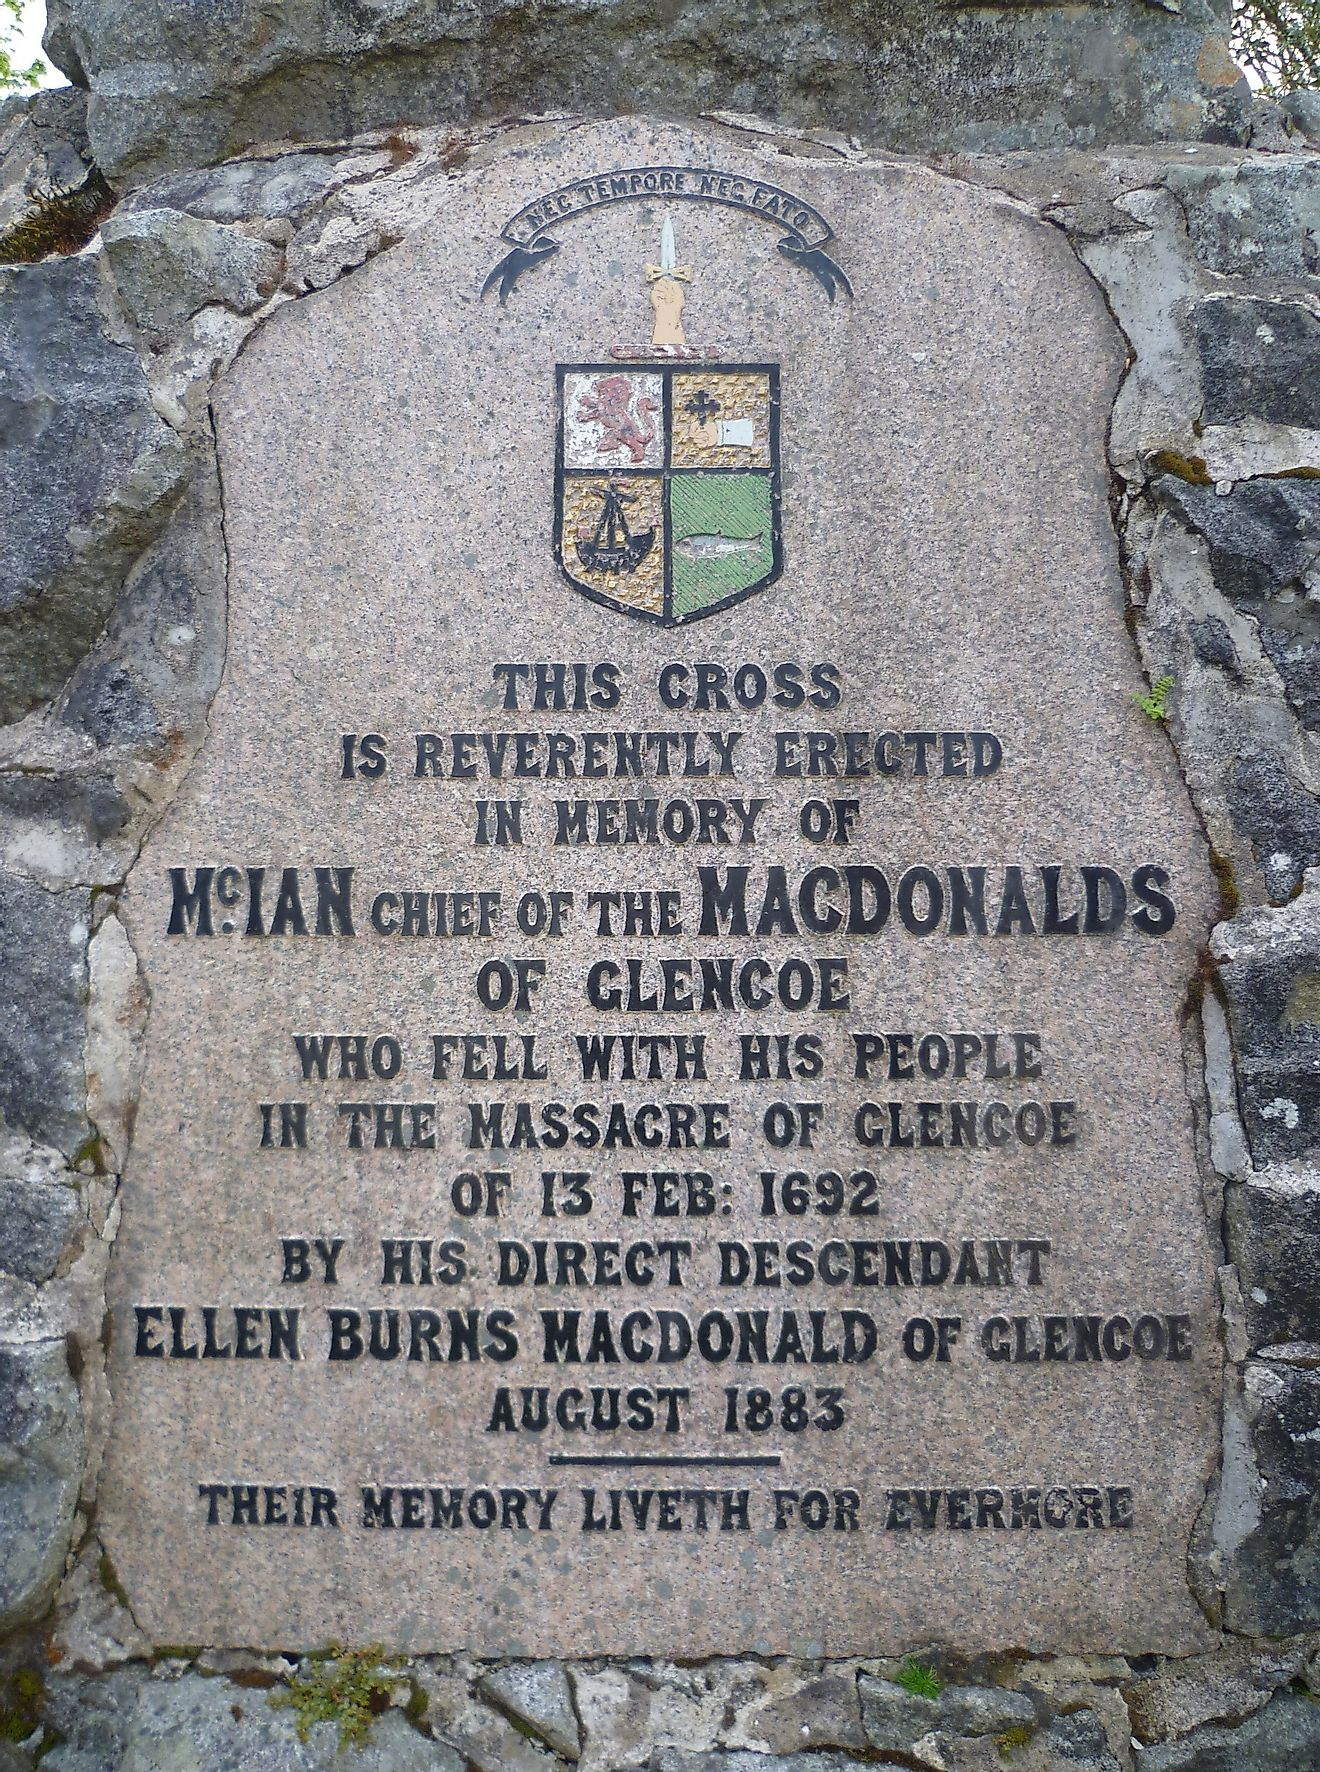 The feud started as small arguments involving cattle but culminated when the MacDonalds refused to give an oath of loyalty to the British flag in 1692. Image credit: highlandtitles.com